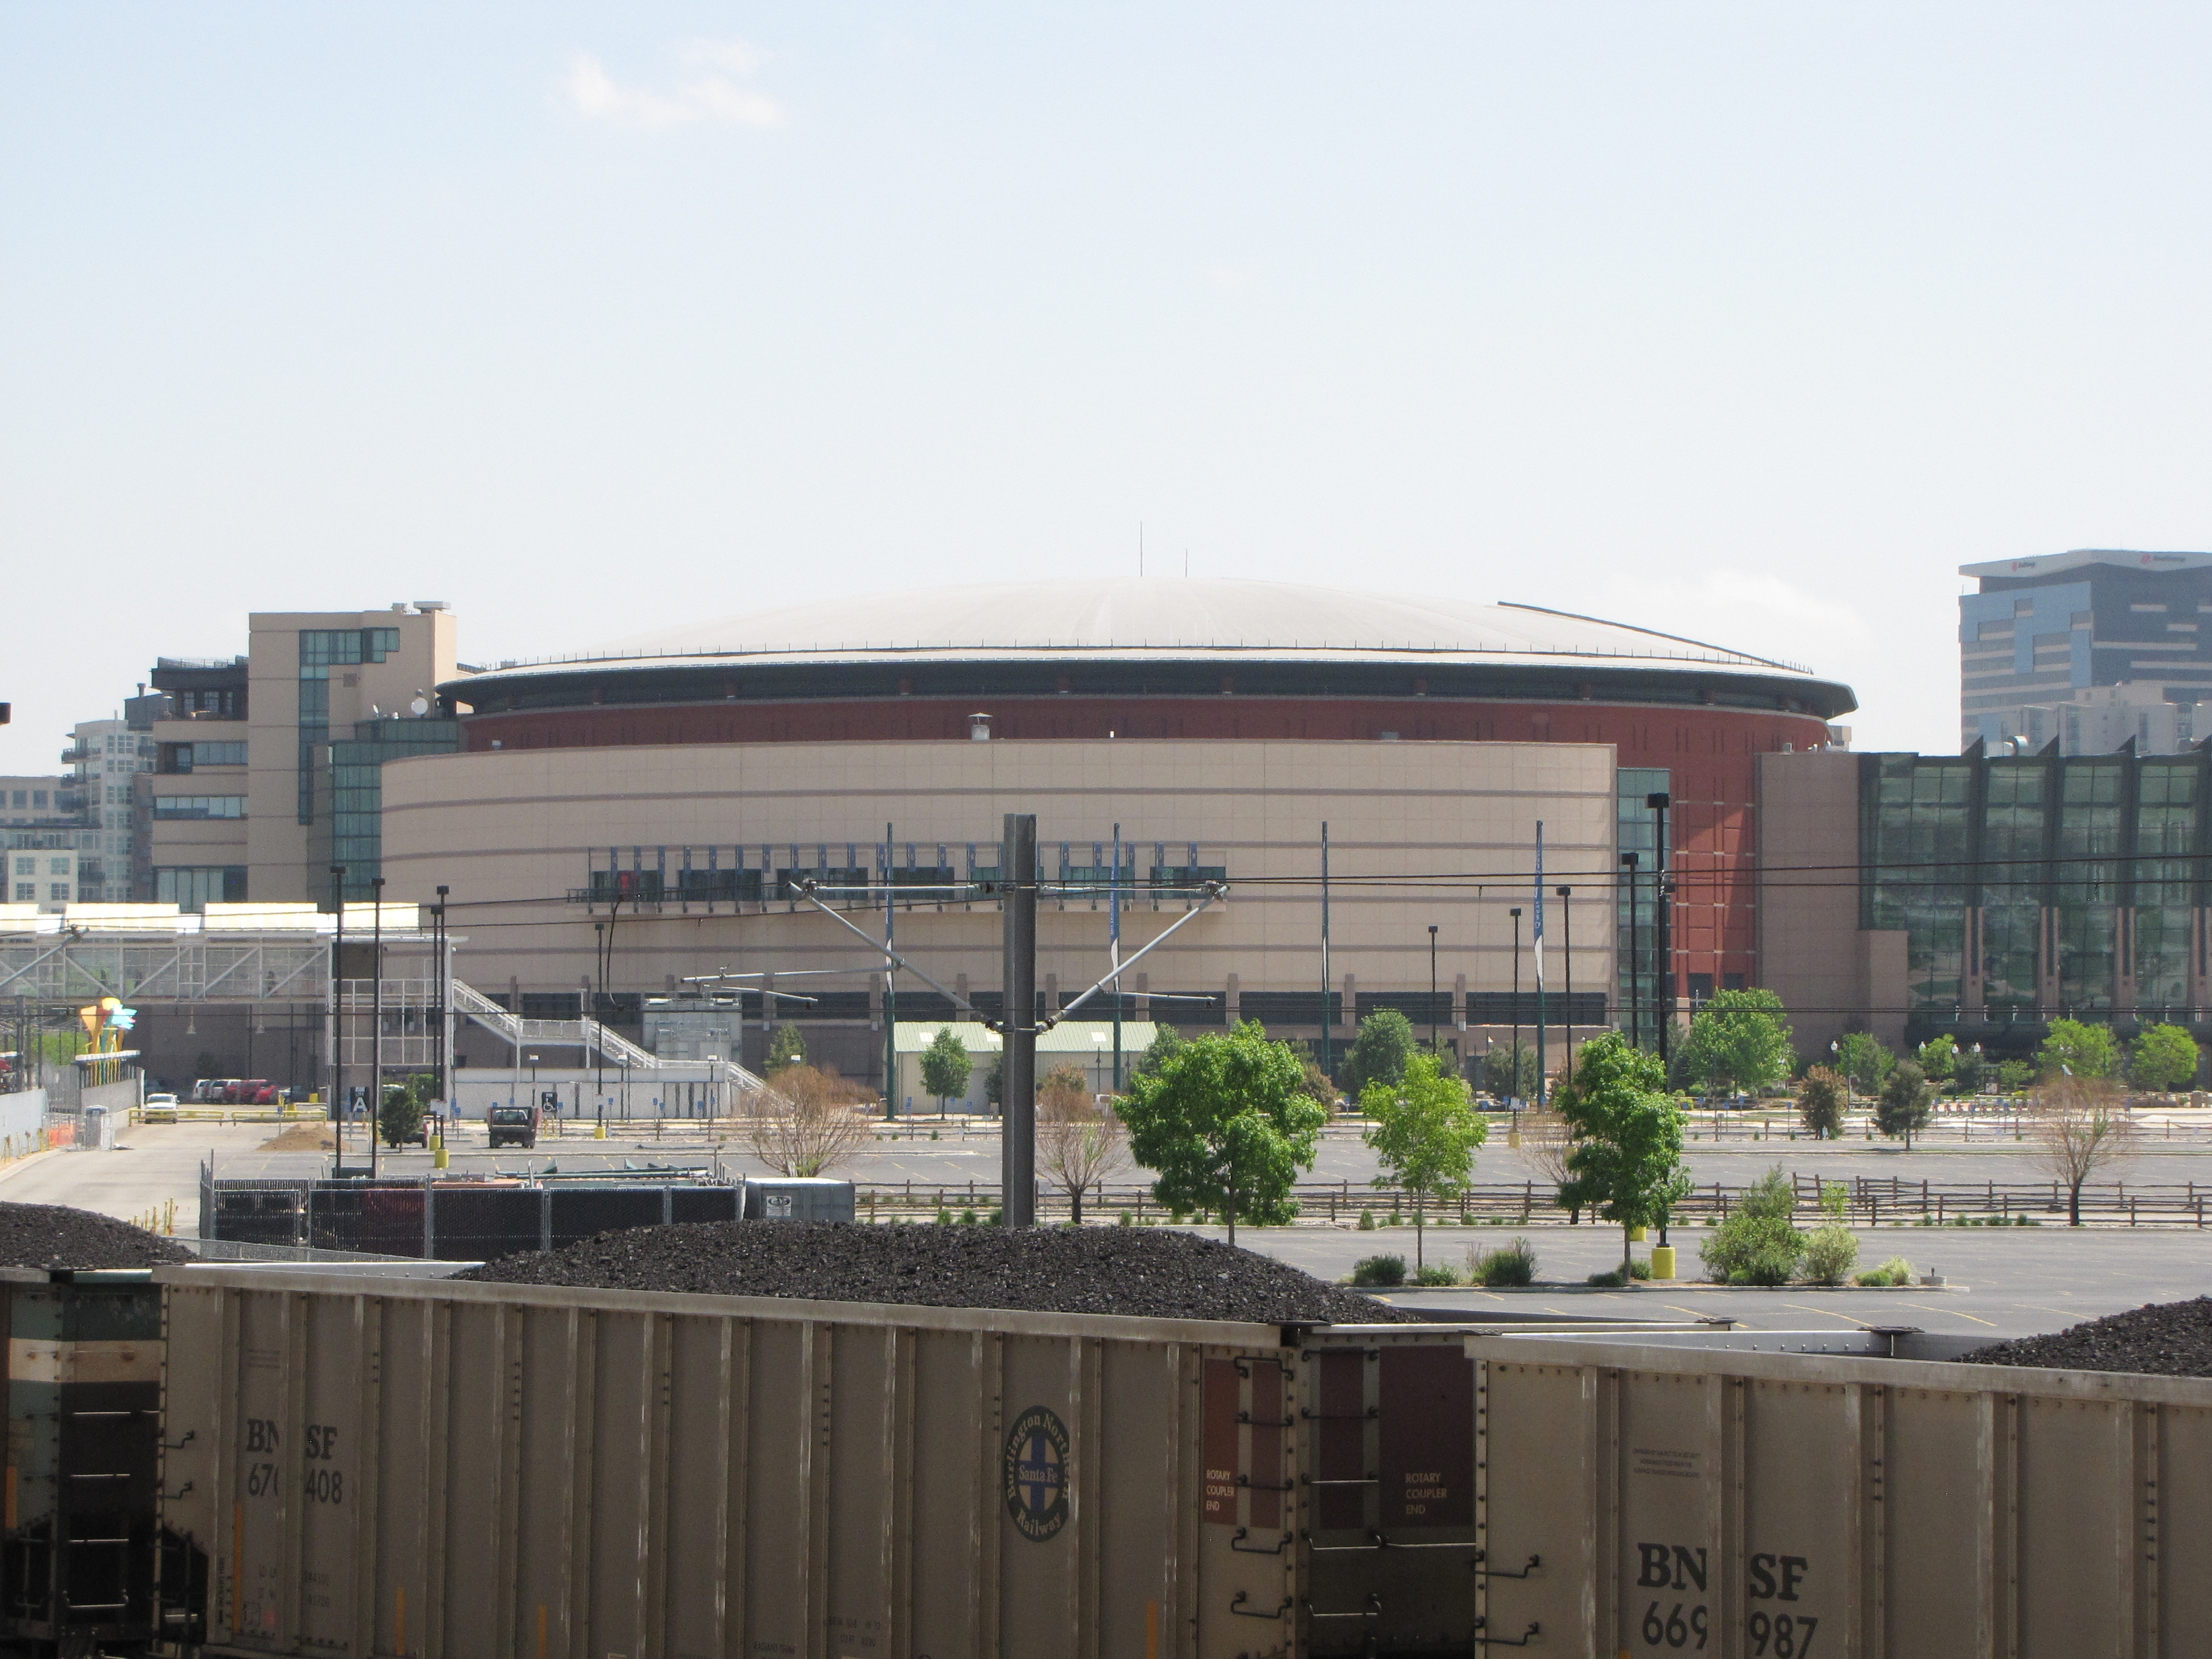 Pepsi Center: Too Much Fun, Too Much Sun, Flip Me I'm Done